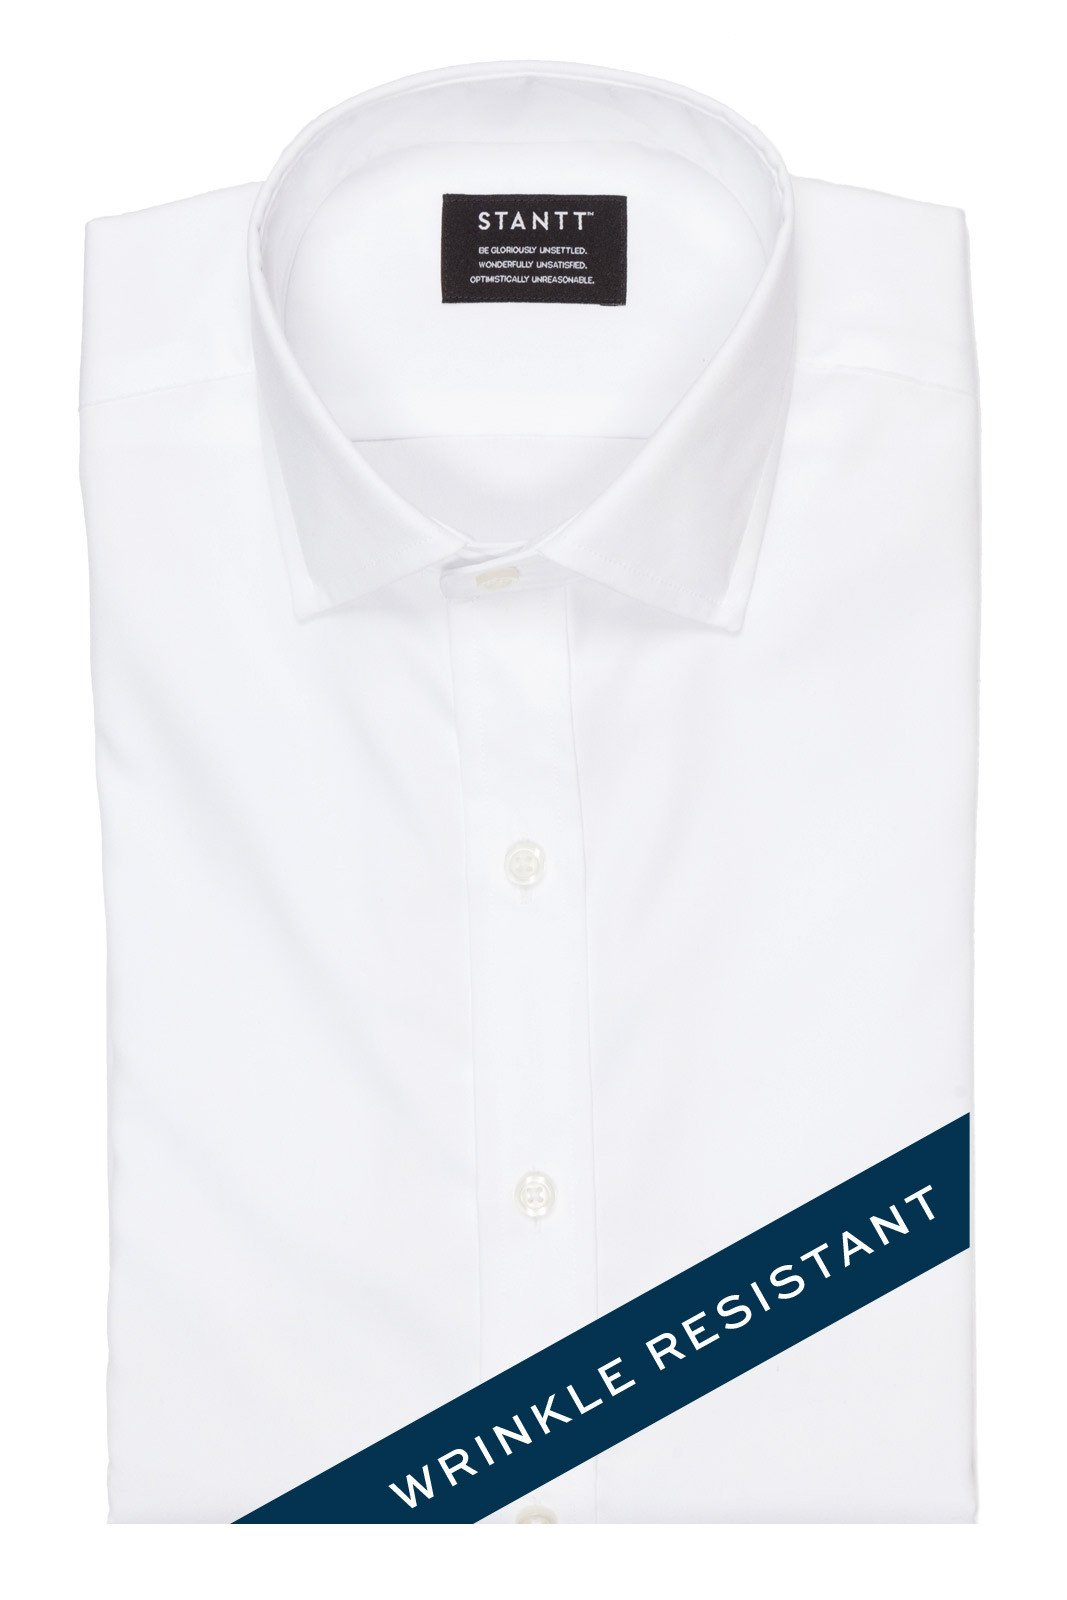 Wrinkle-Resistant White Oxford: Modified-Spread Collar, Barrel Cuff